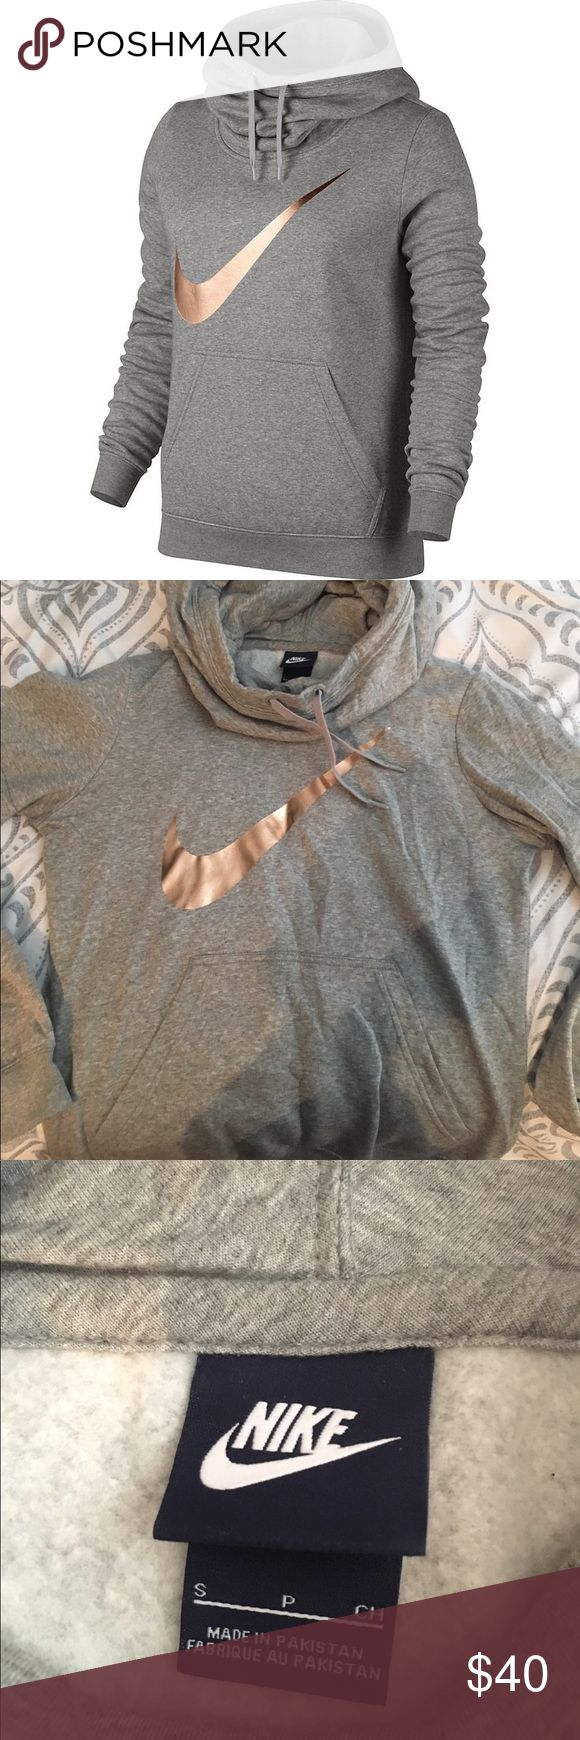 Nike gray and rose gold hoodie Nike gray and rose gold hoodie. Size: Small. Only been worn once super soft and comfy. Nike Tops Sweatshirts & Hoodies